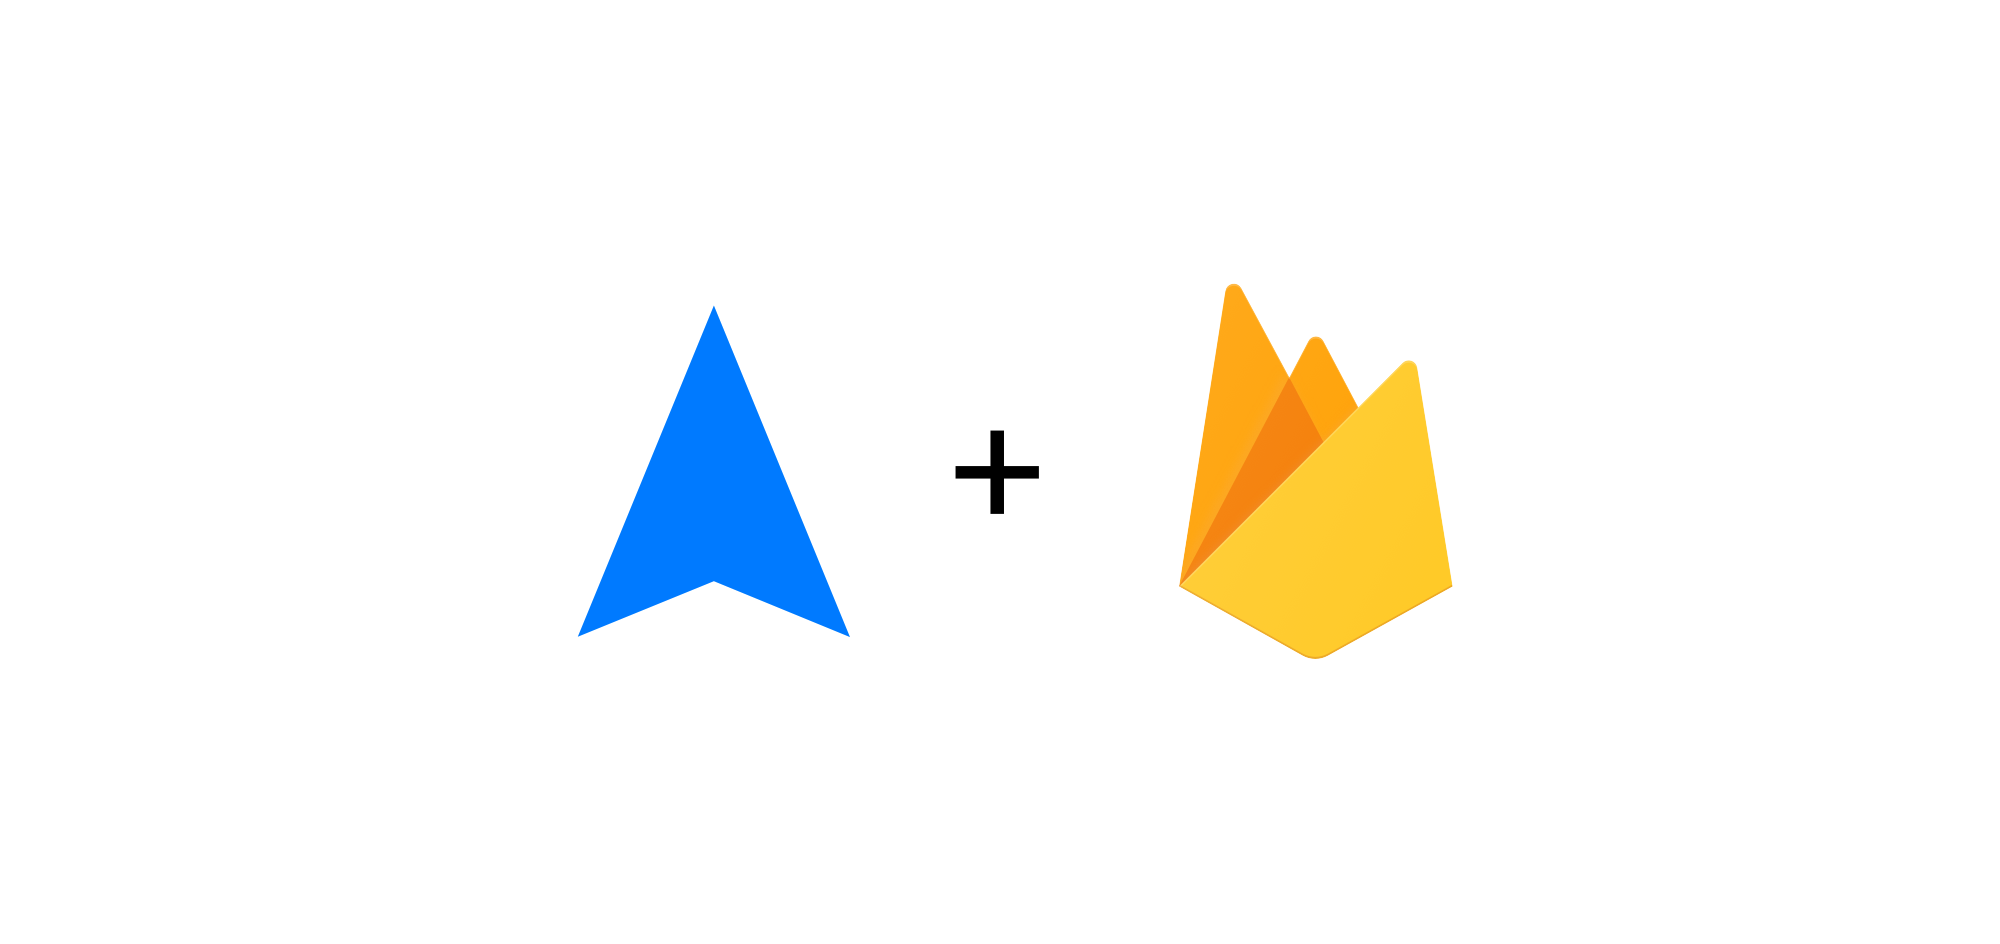 https://s3.amazonaws.com/io.radar.blog/posts/triggering-firebase-cloud-functions-with-radar-events/firebase.png